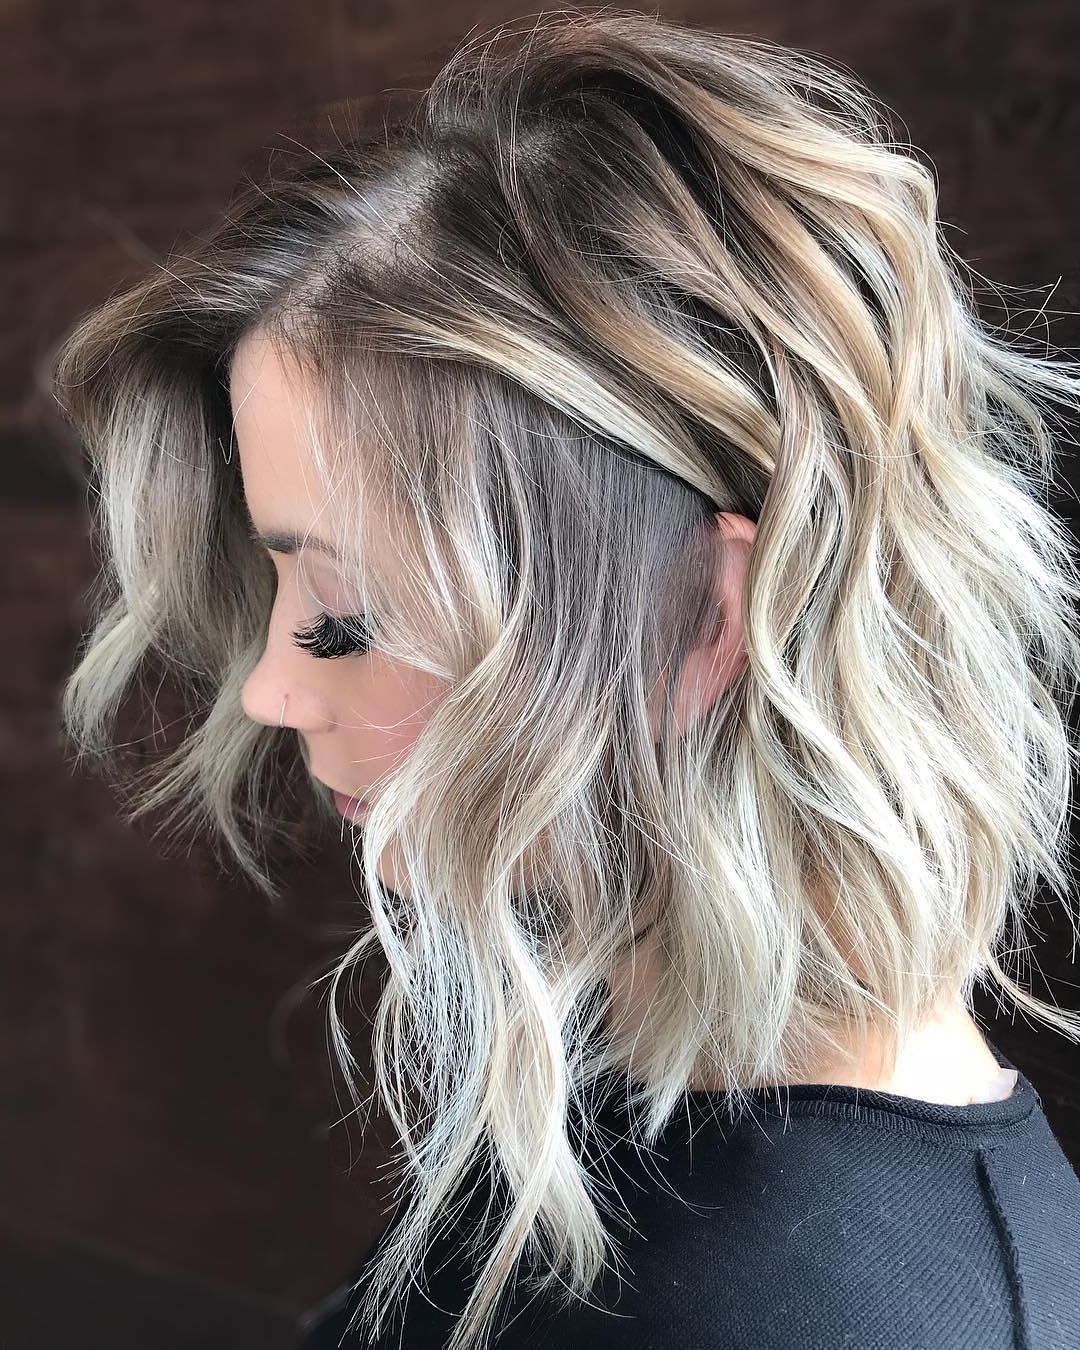 10 Ombre Balayage Hairstyles For Medium Length Hair, Hair 30+ Cute Blonde Hairstyles For Medium Length Hair